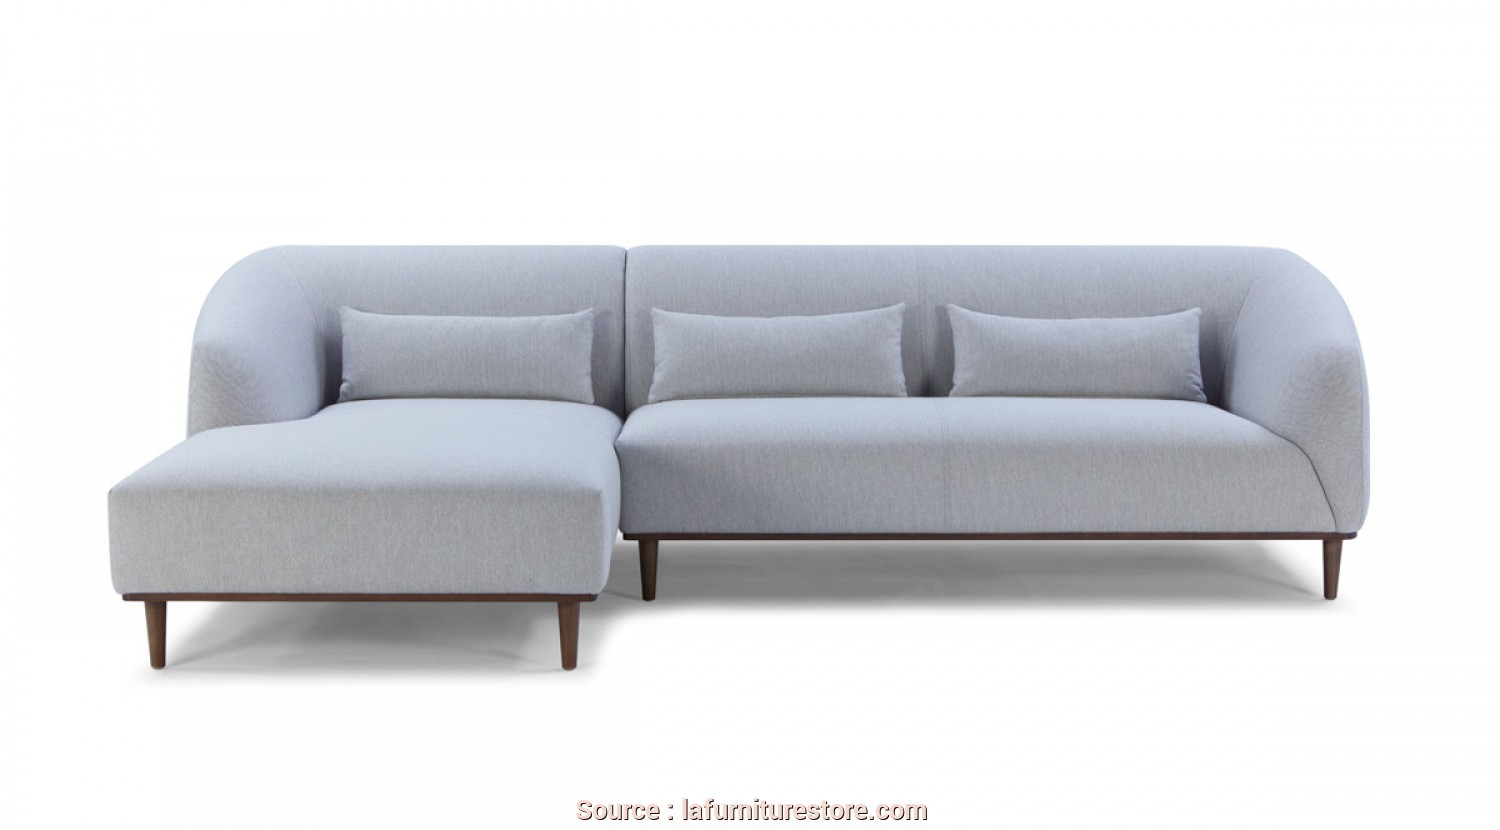 Ricambi Divani Dondi, A Buon Mercato Divani Casa Venus, Century Modern Grey Fabric Sectional W/ Left Facing Chaise